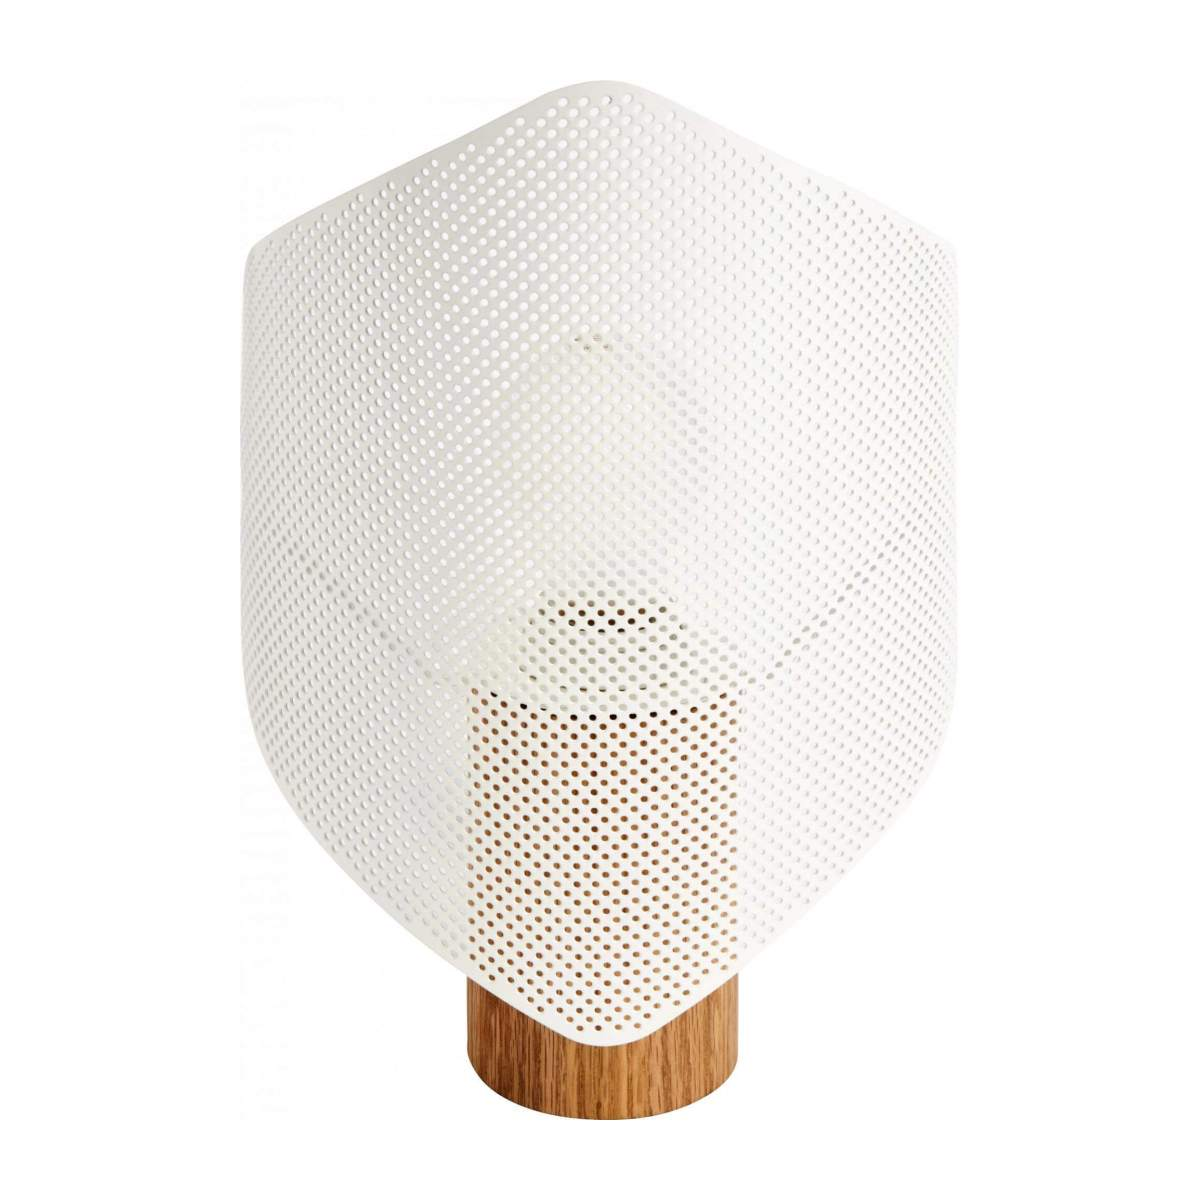 Lampe de table blanche n°3